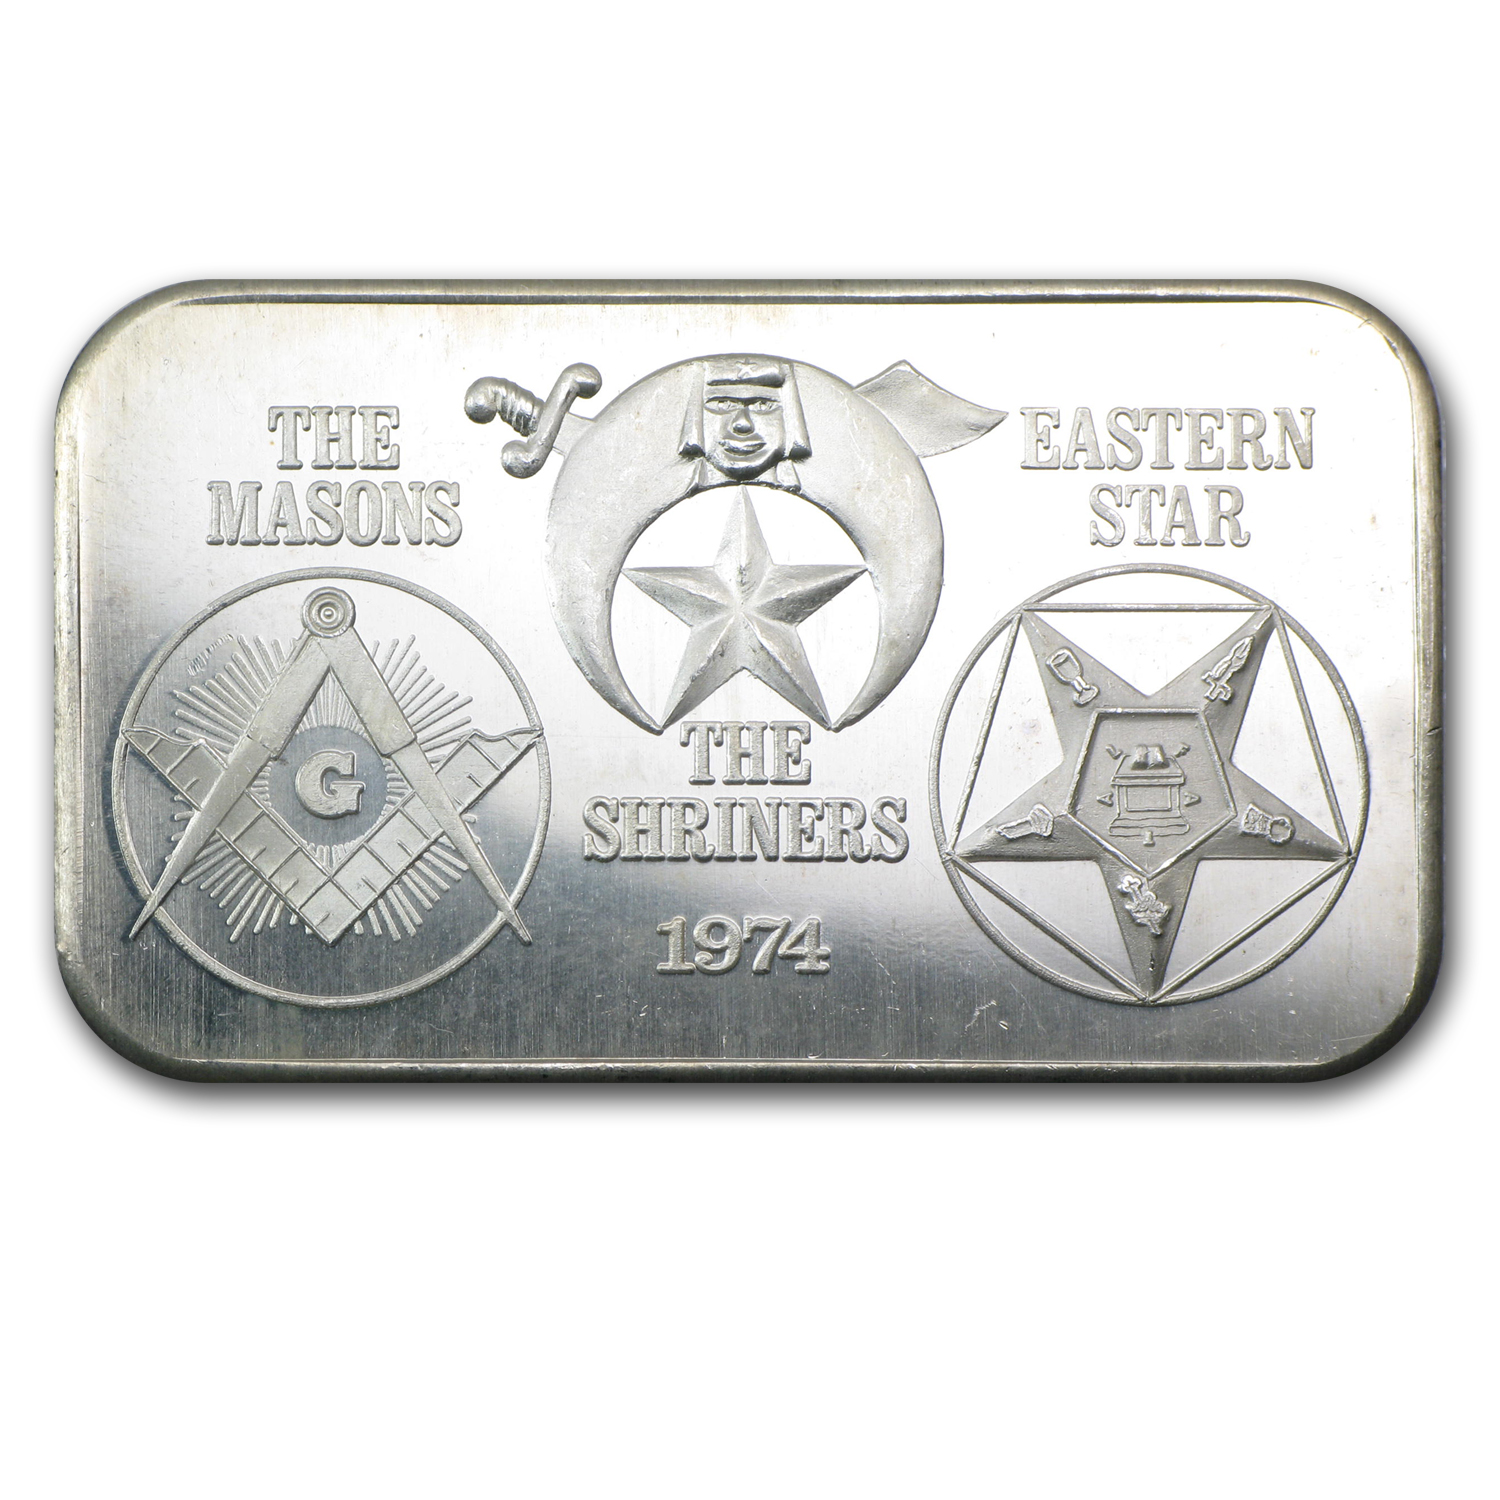 1 oz Silver Bars - Masons/Shriners/Eastern Star